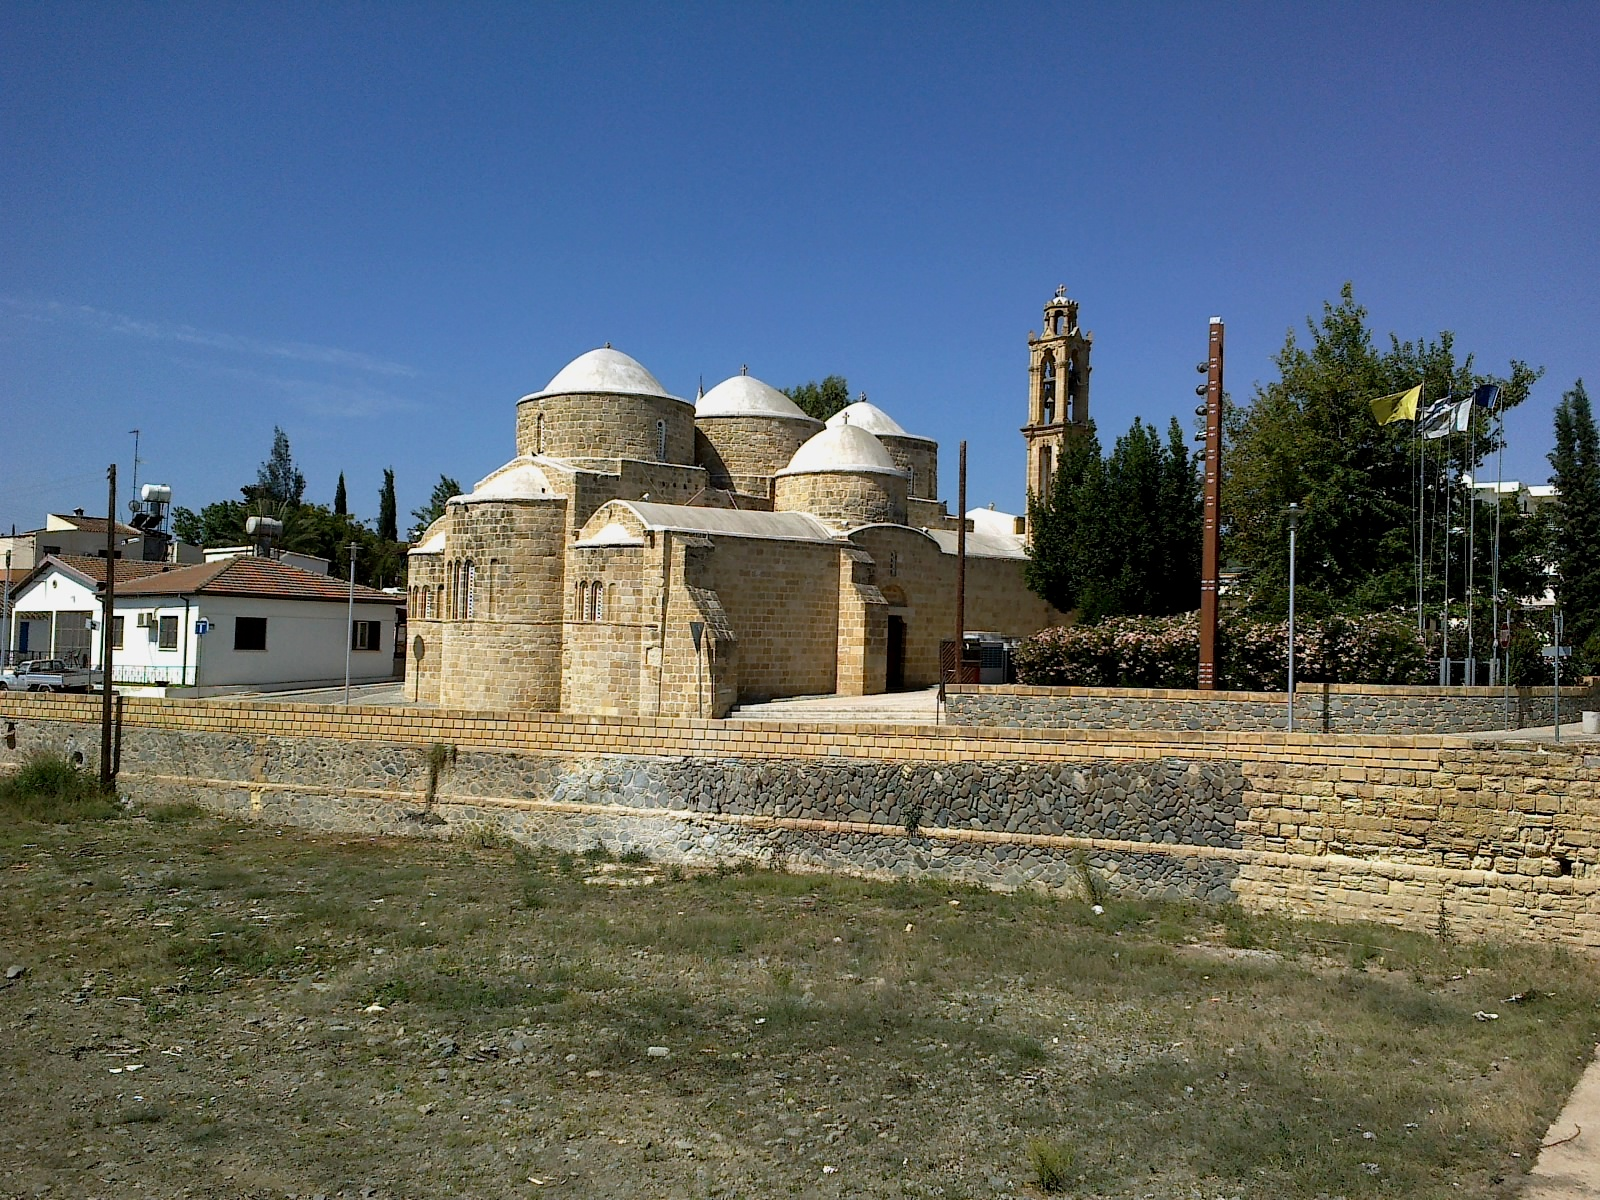 Saints Barnabas and Hilarion Church in Peristerona, Cyprus. Photo taken on June 16, 2014.